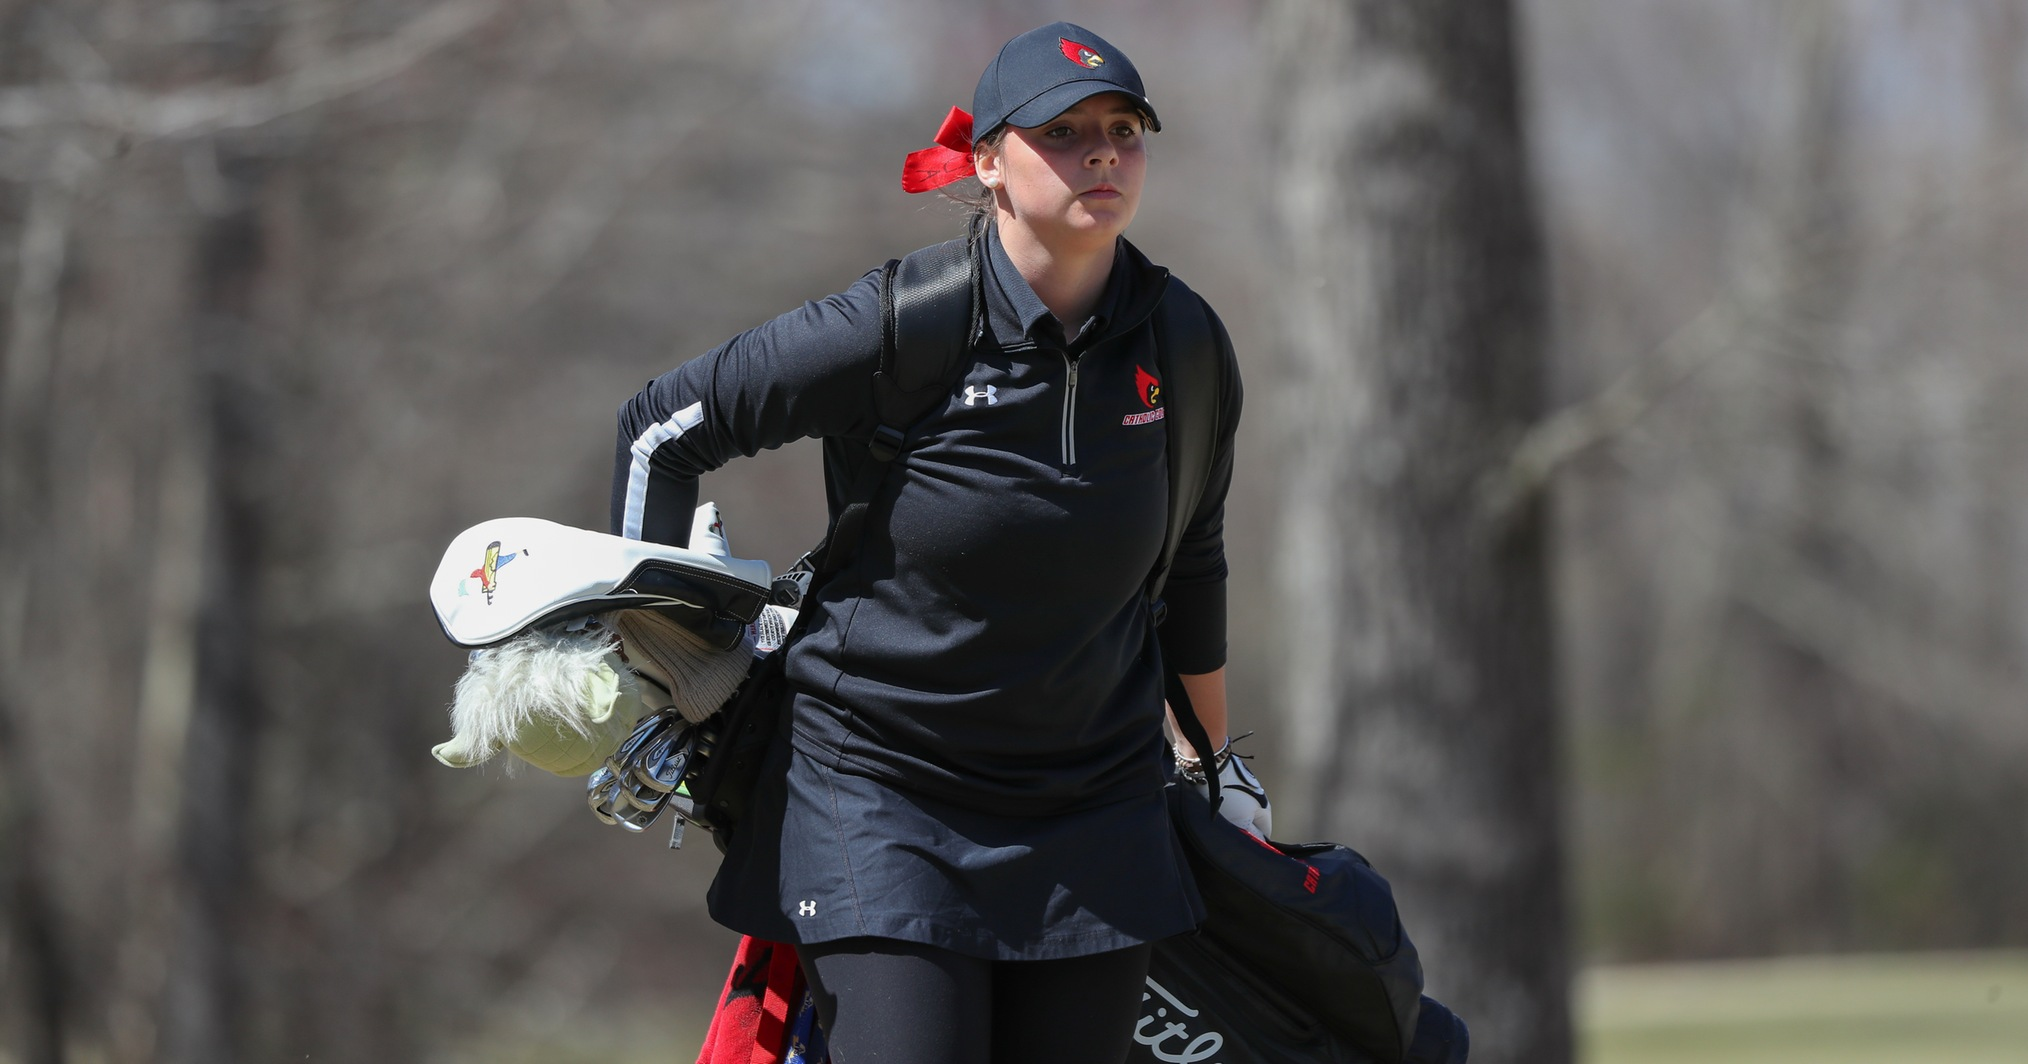 Cardinals Place Fifth in Greene Turtle Invitational